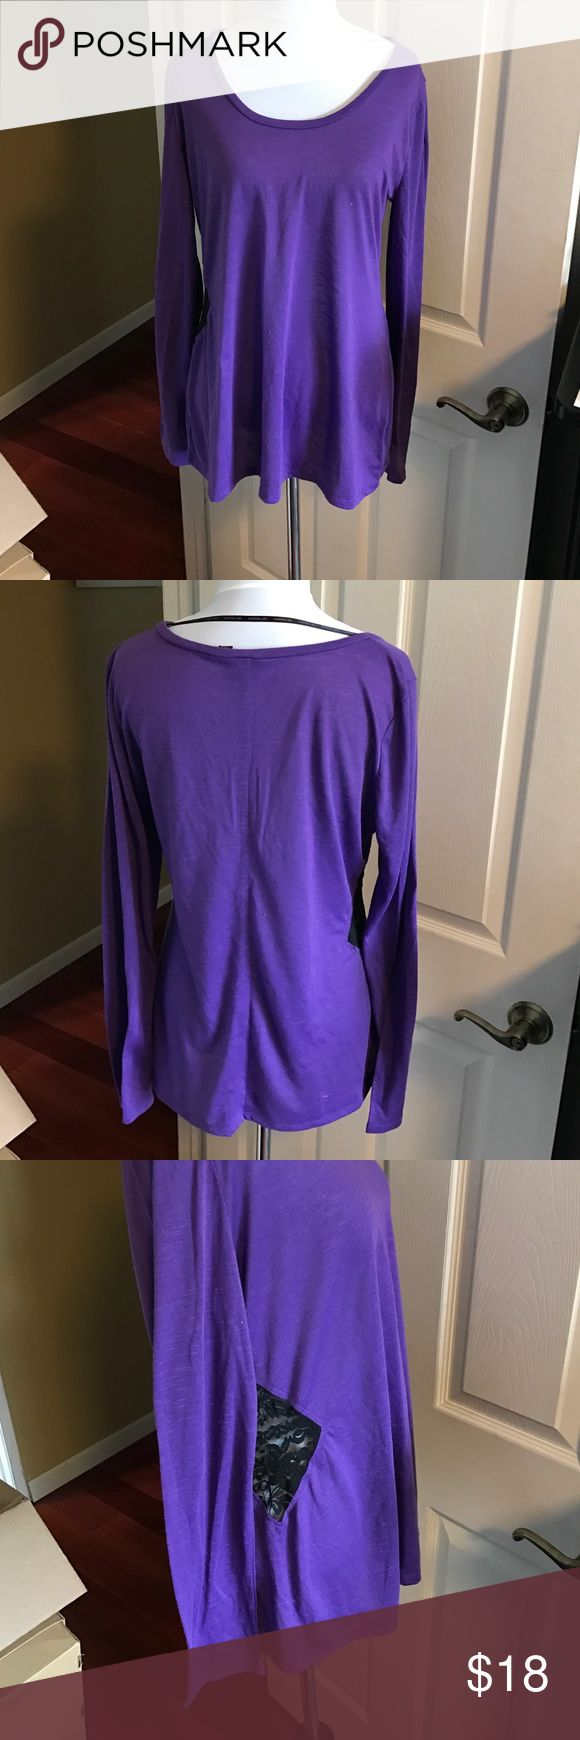 Purple Long Sleeve with Lace Cutout Beautiful purple long sleeve with a twist. Side cutout with black lace insert. Worn 2x. Material Girl Tops Tees - Long Sleeve